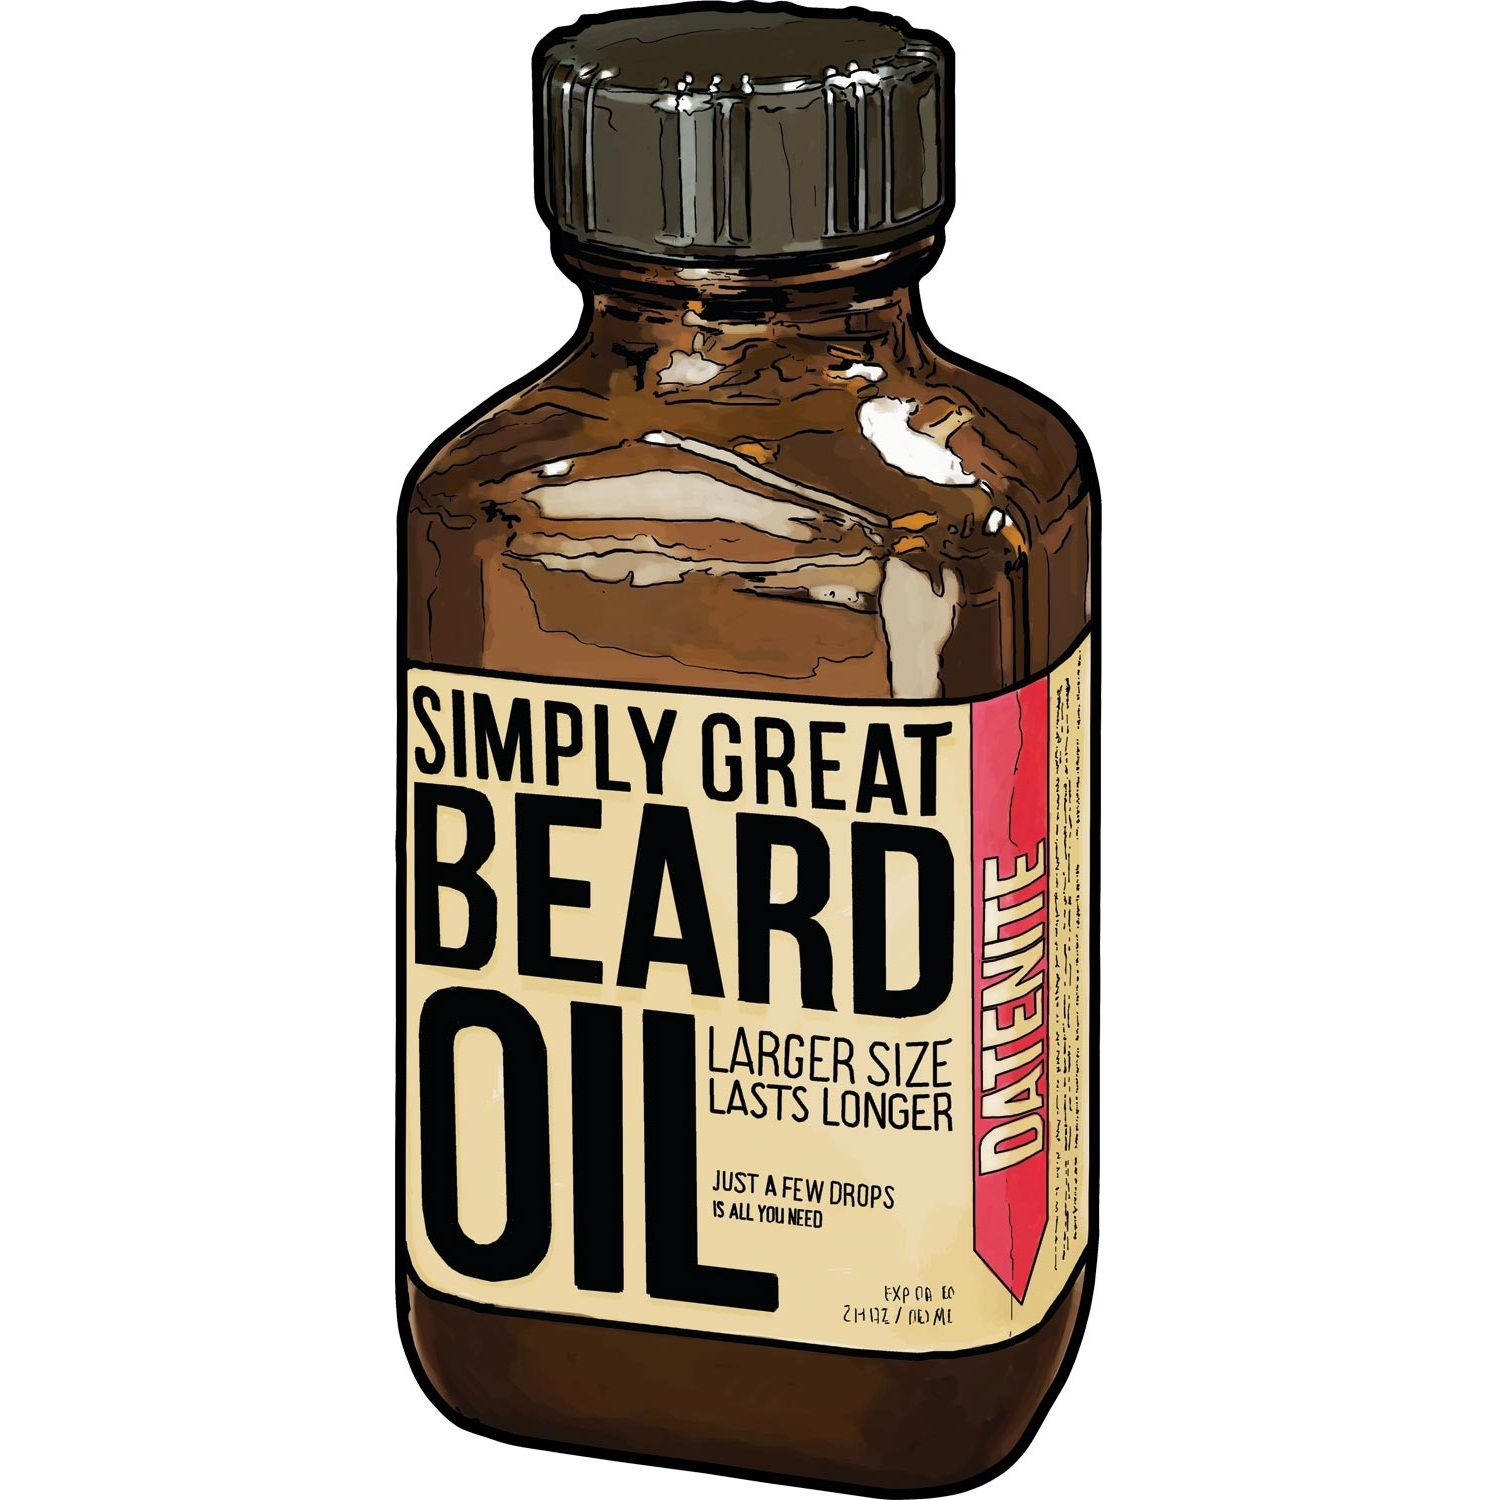 Just a few drops is all you need to keep your beard